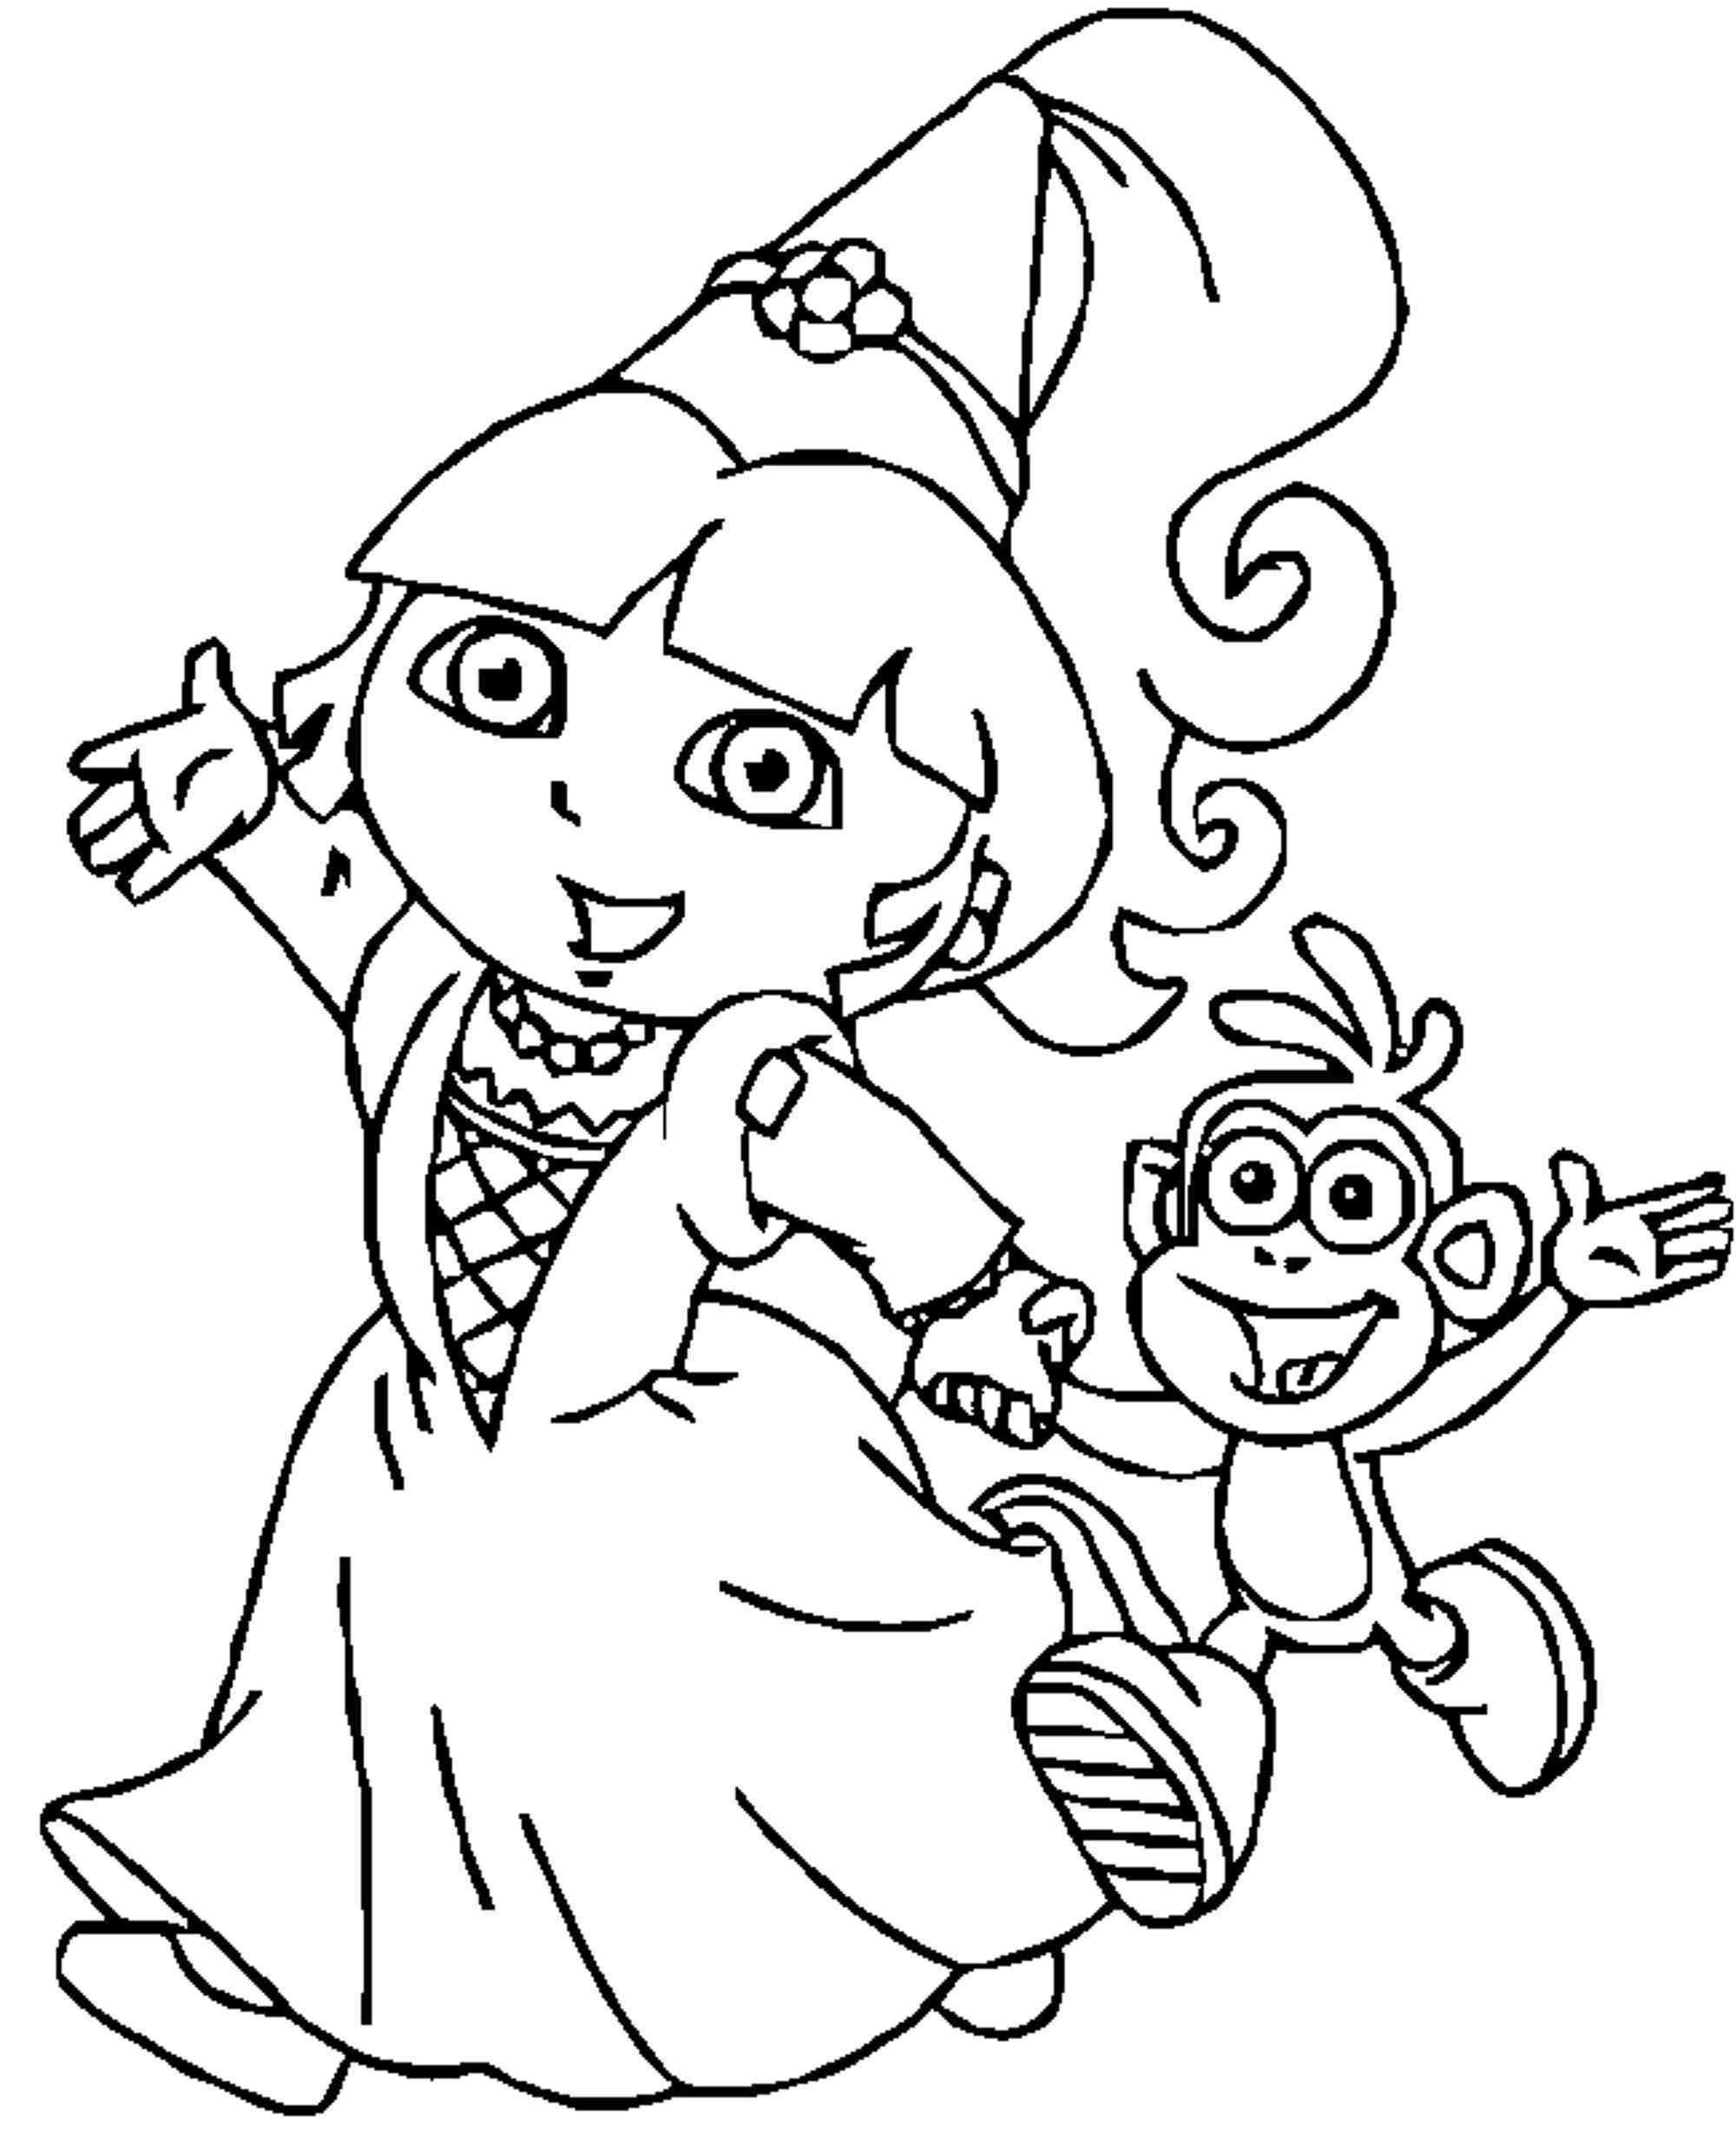 dora coloring pages online free get this printable dora the explorer coloring pages online free online coloring pages dora